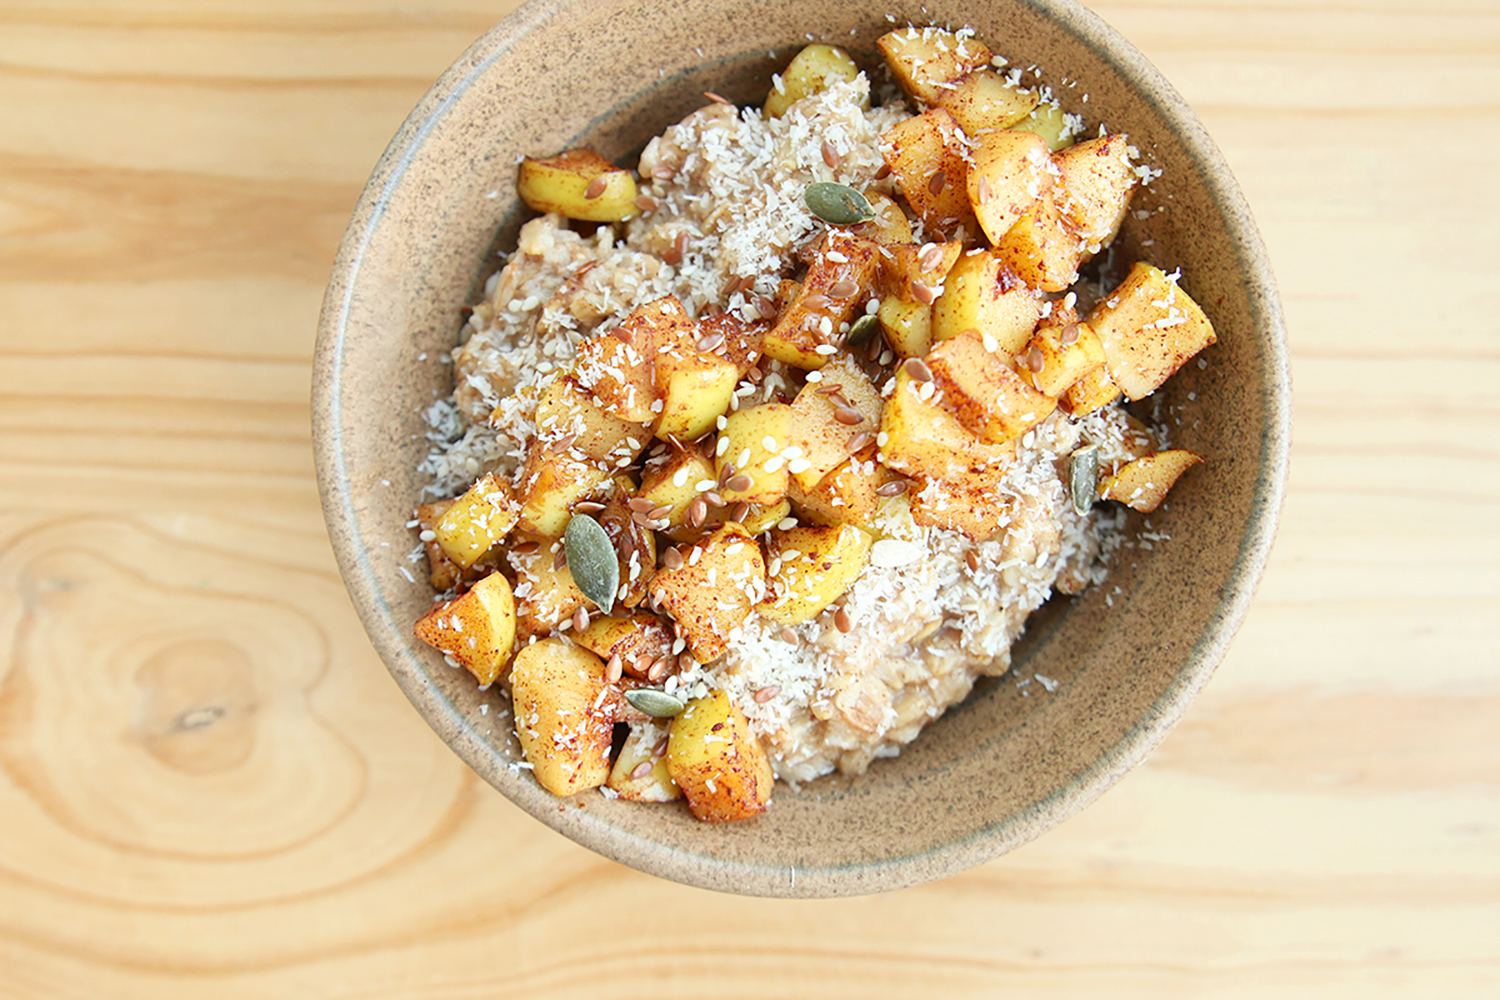 - The coziest apple, honey and cinnamon oat bowl.